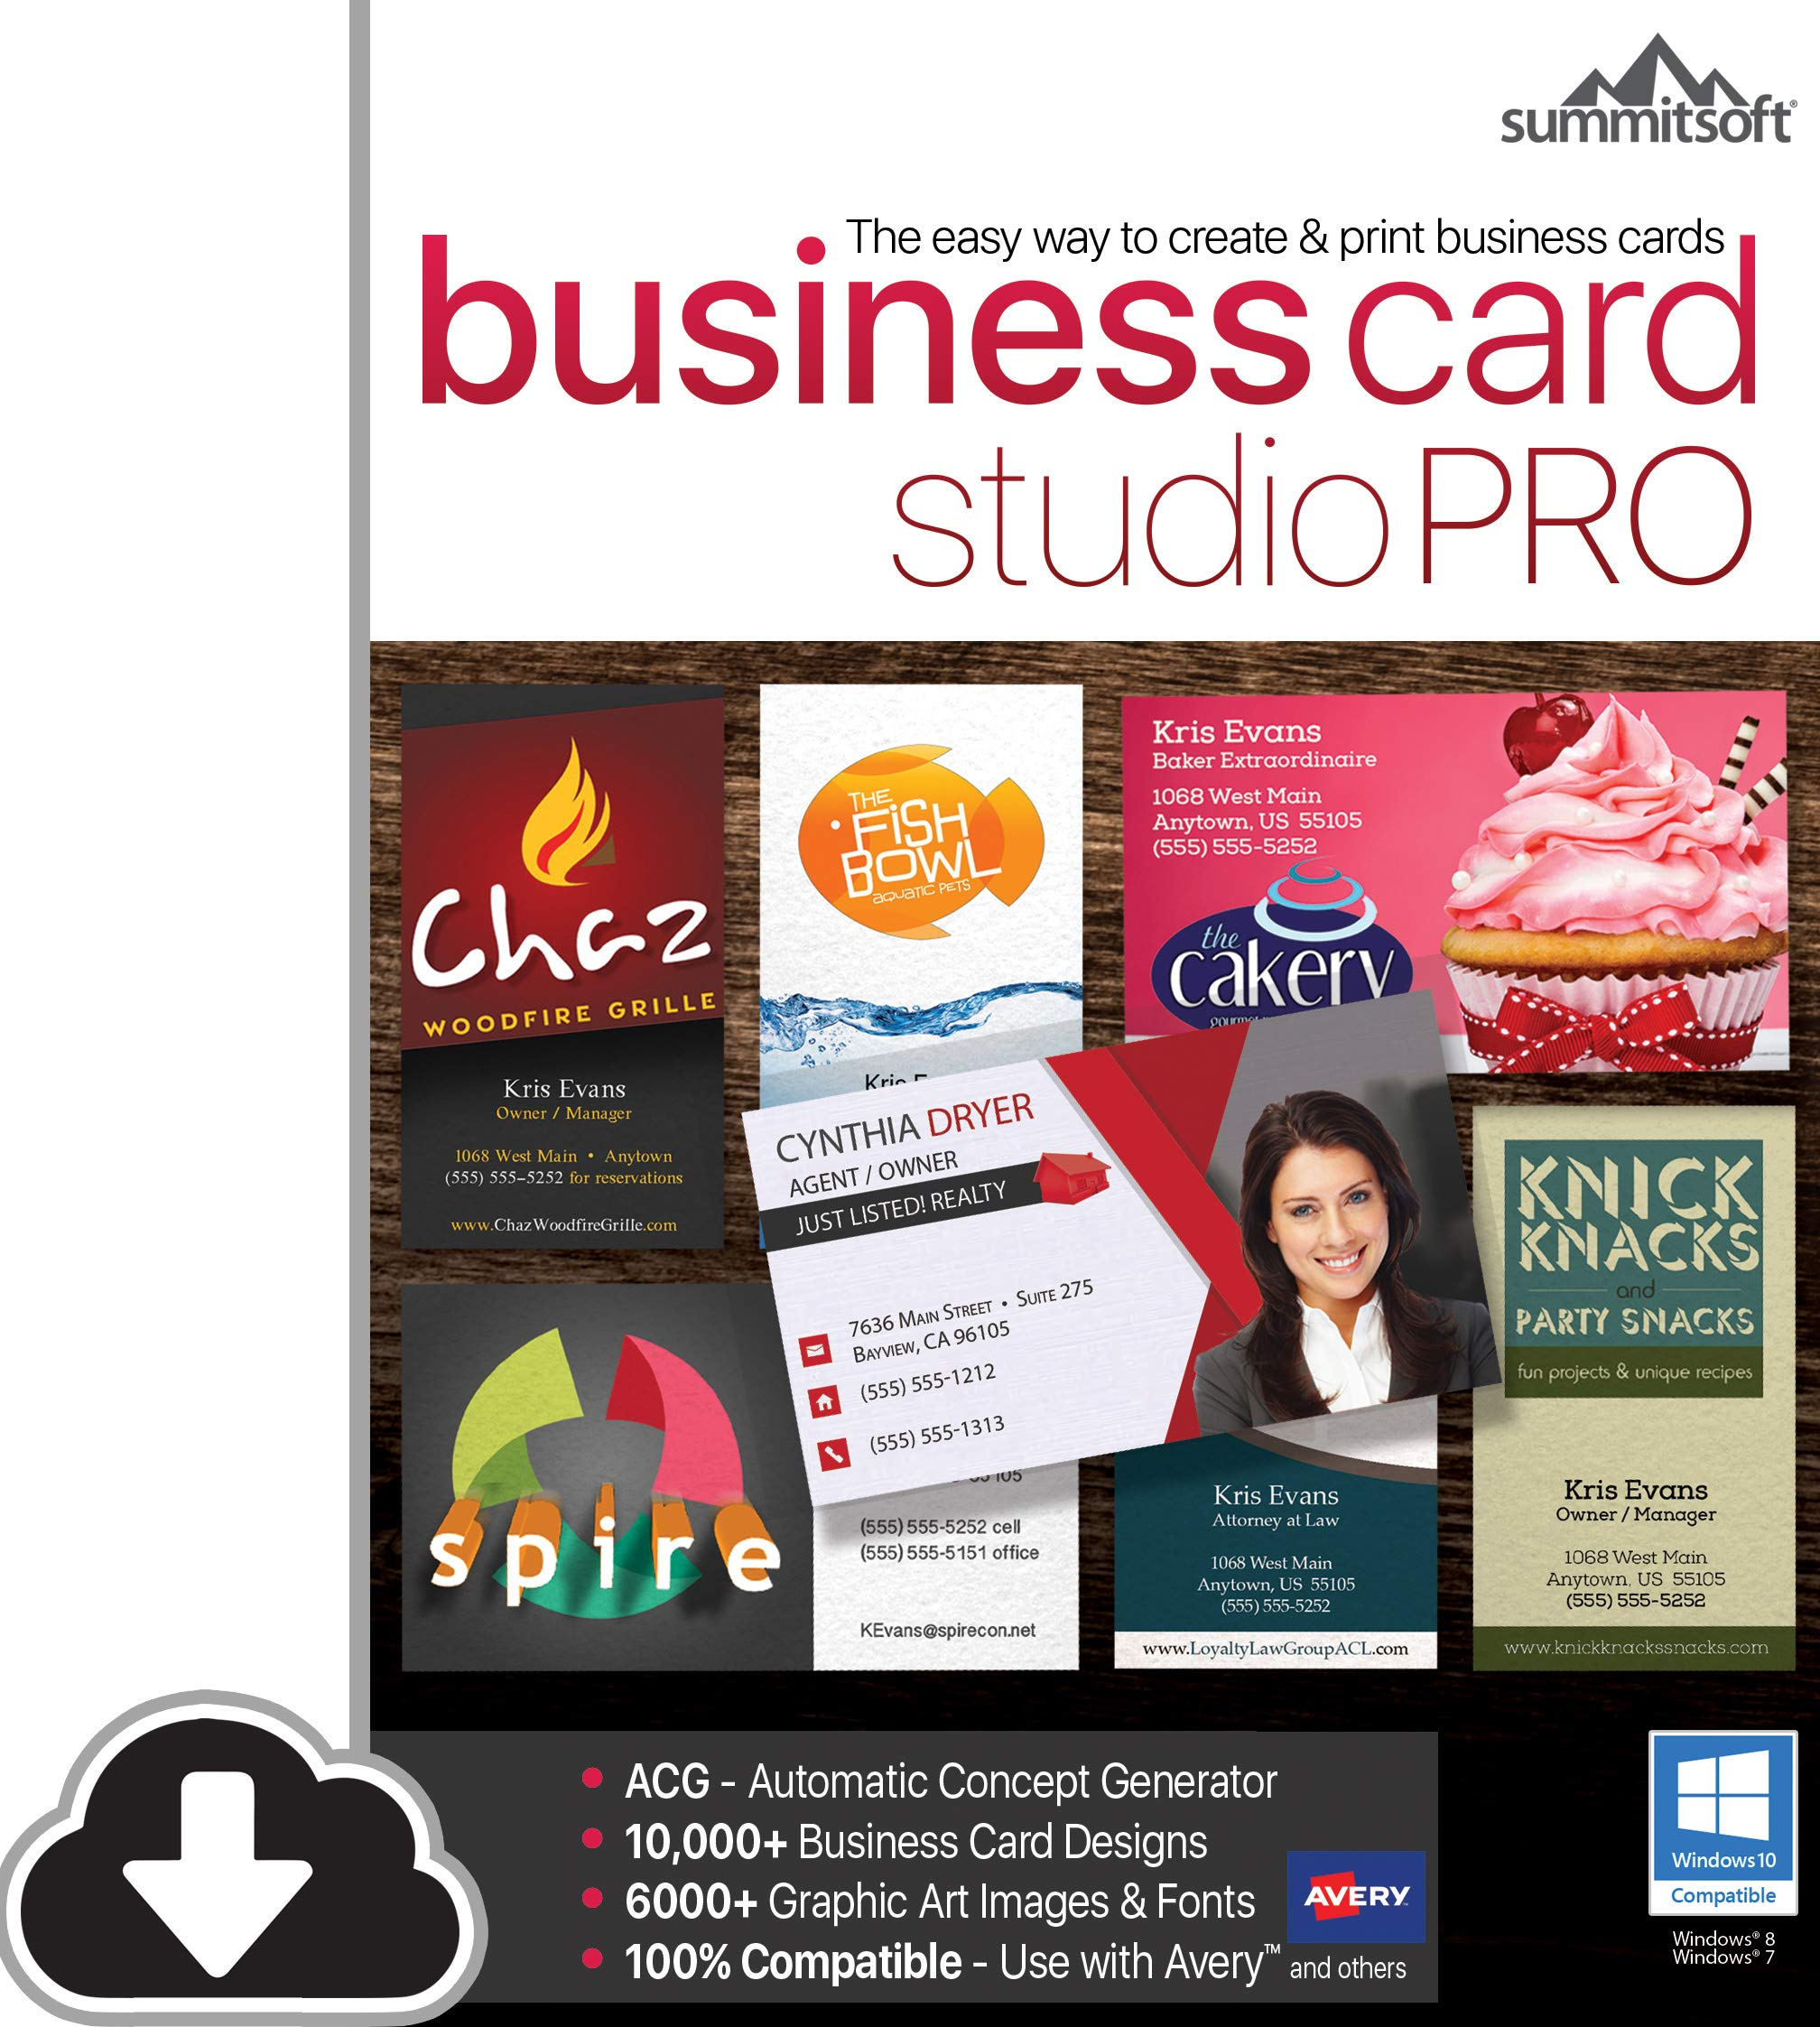 Business Card Studio Pro [PC Download] by Summitsoft